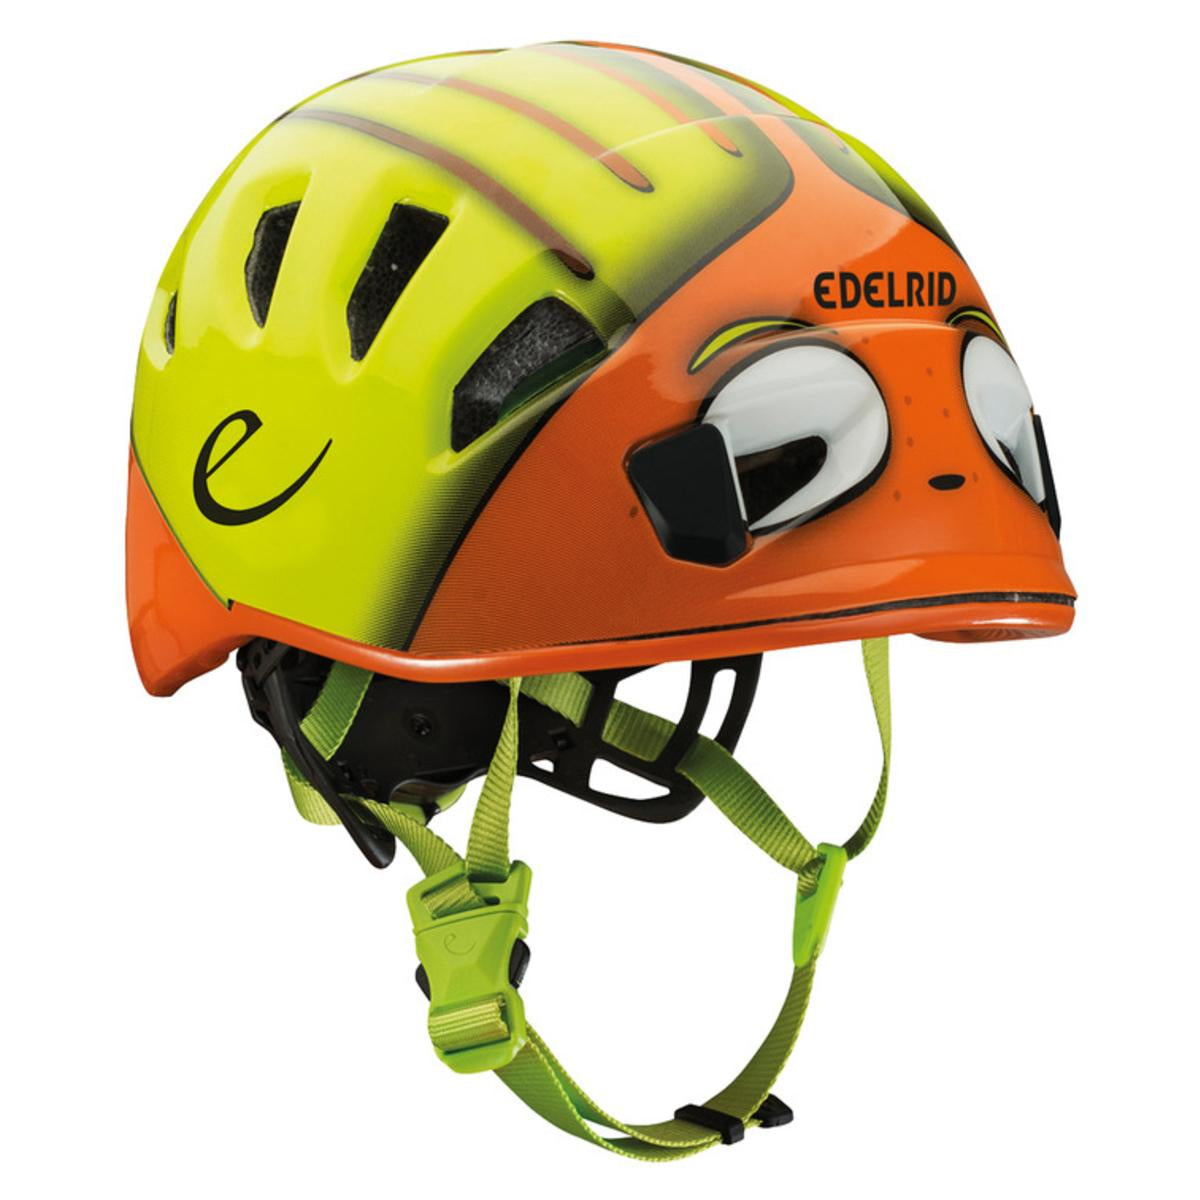 Edelrid Shield II Kids Youth Helmet